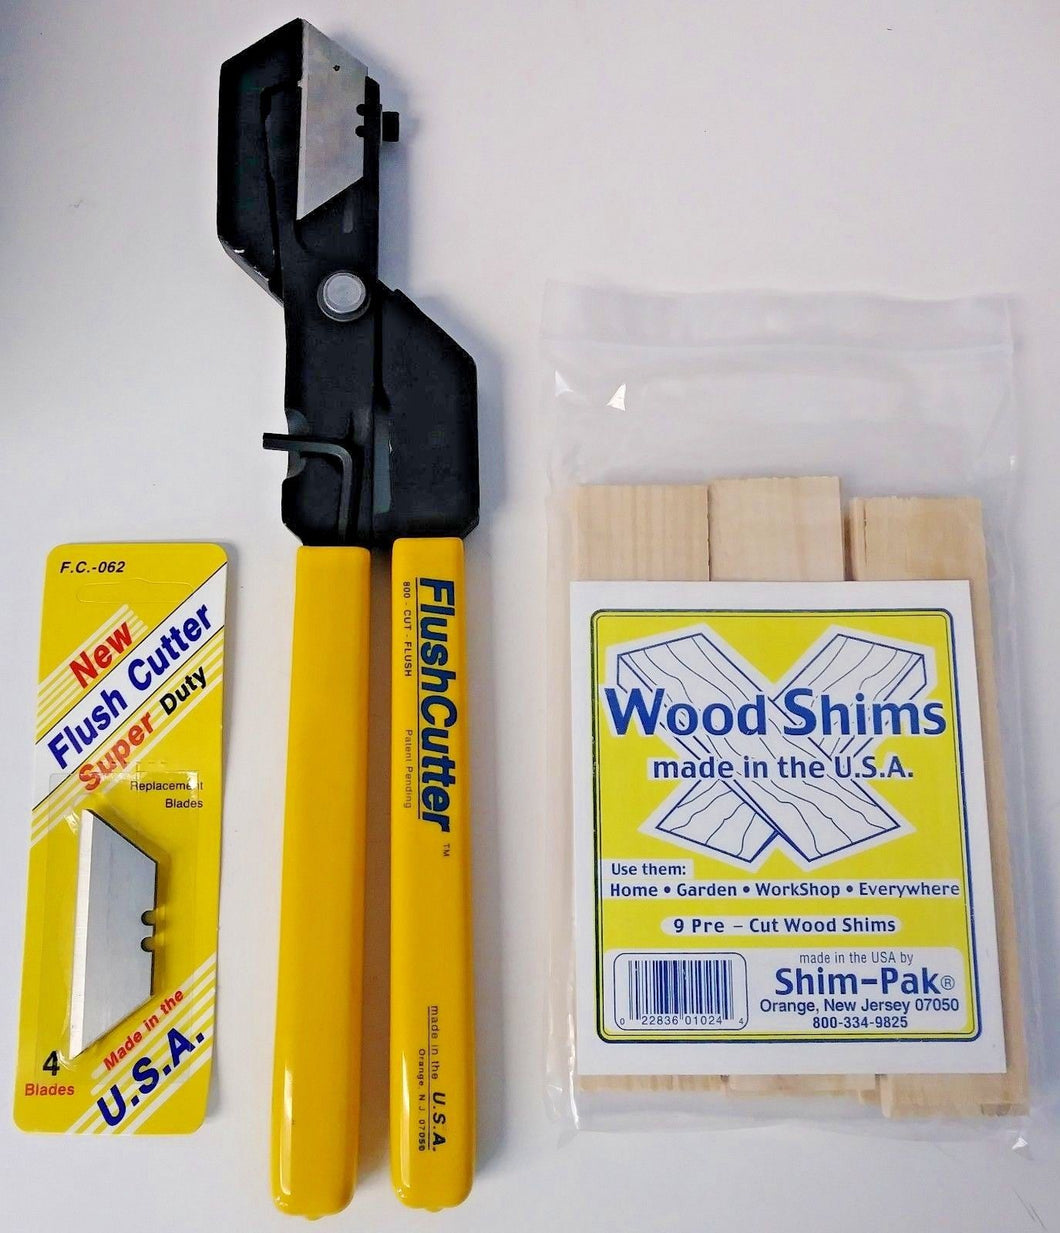 Flush Cutter 06294 Wood Shim Cutter With 9 Shims 01024 & 4 Blades 062 USA